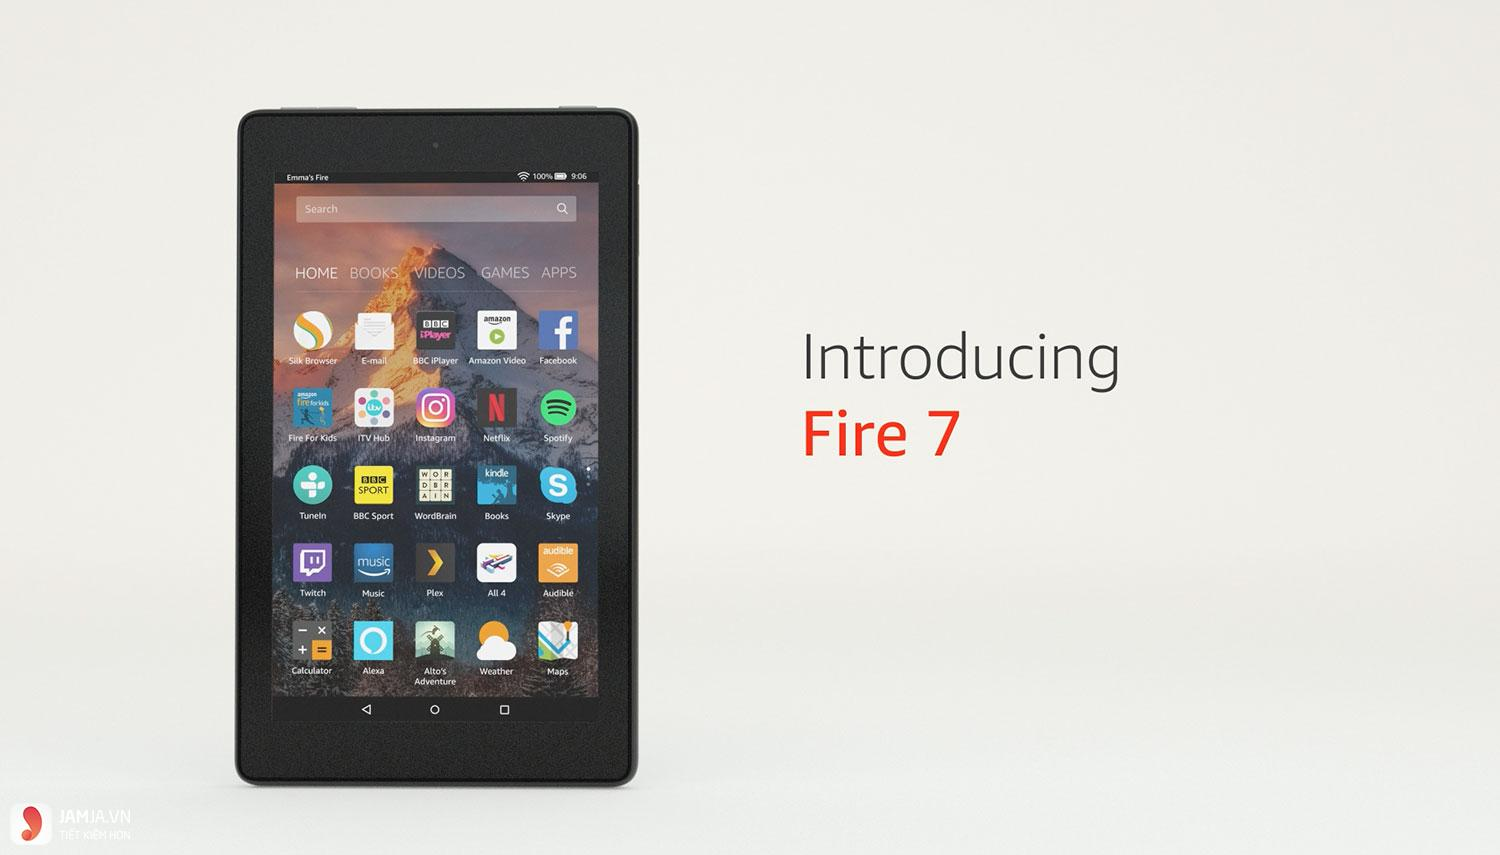 Amazon Fire 7 Tablet 3